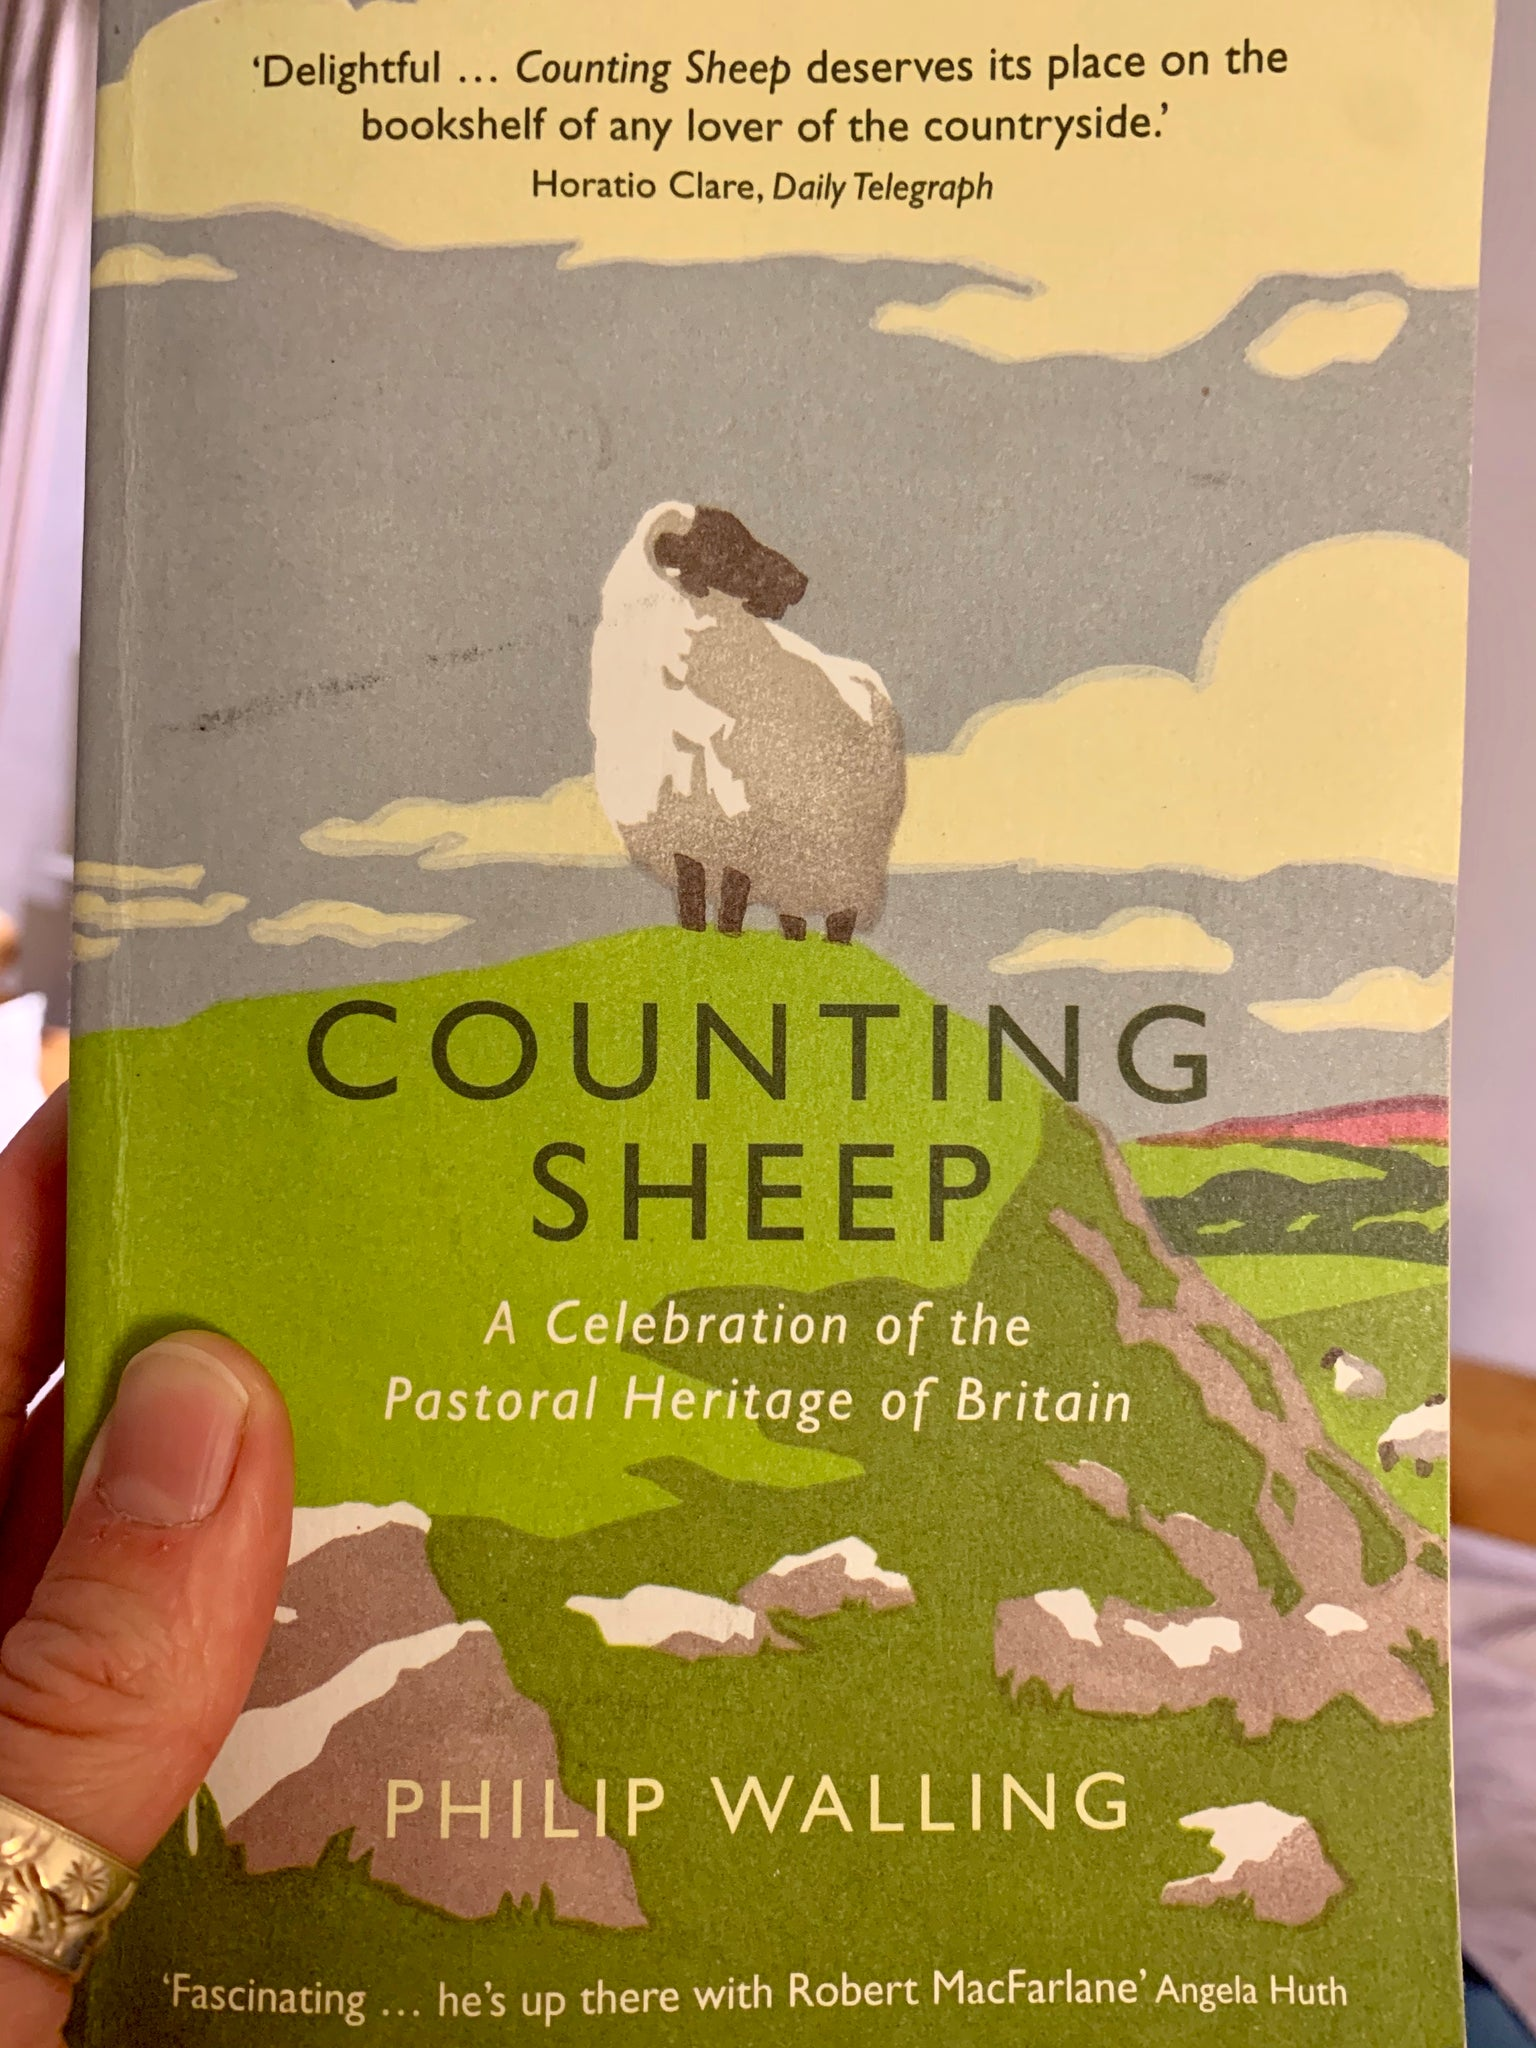 Counting Sheep by Philip Walling, pub. 2015